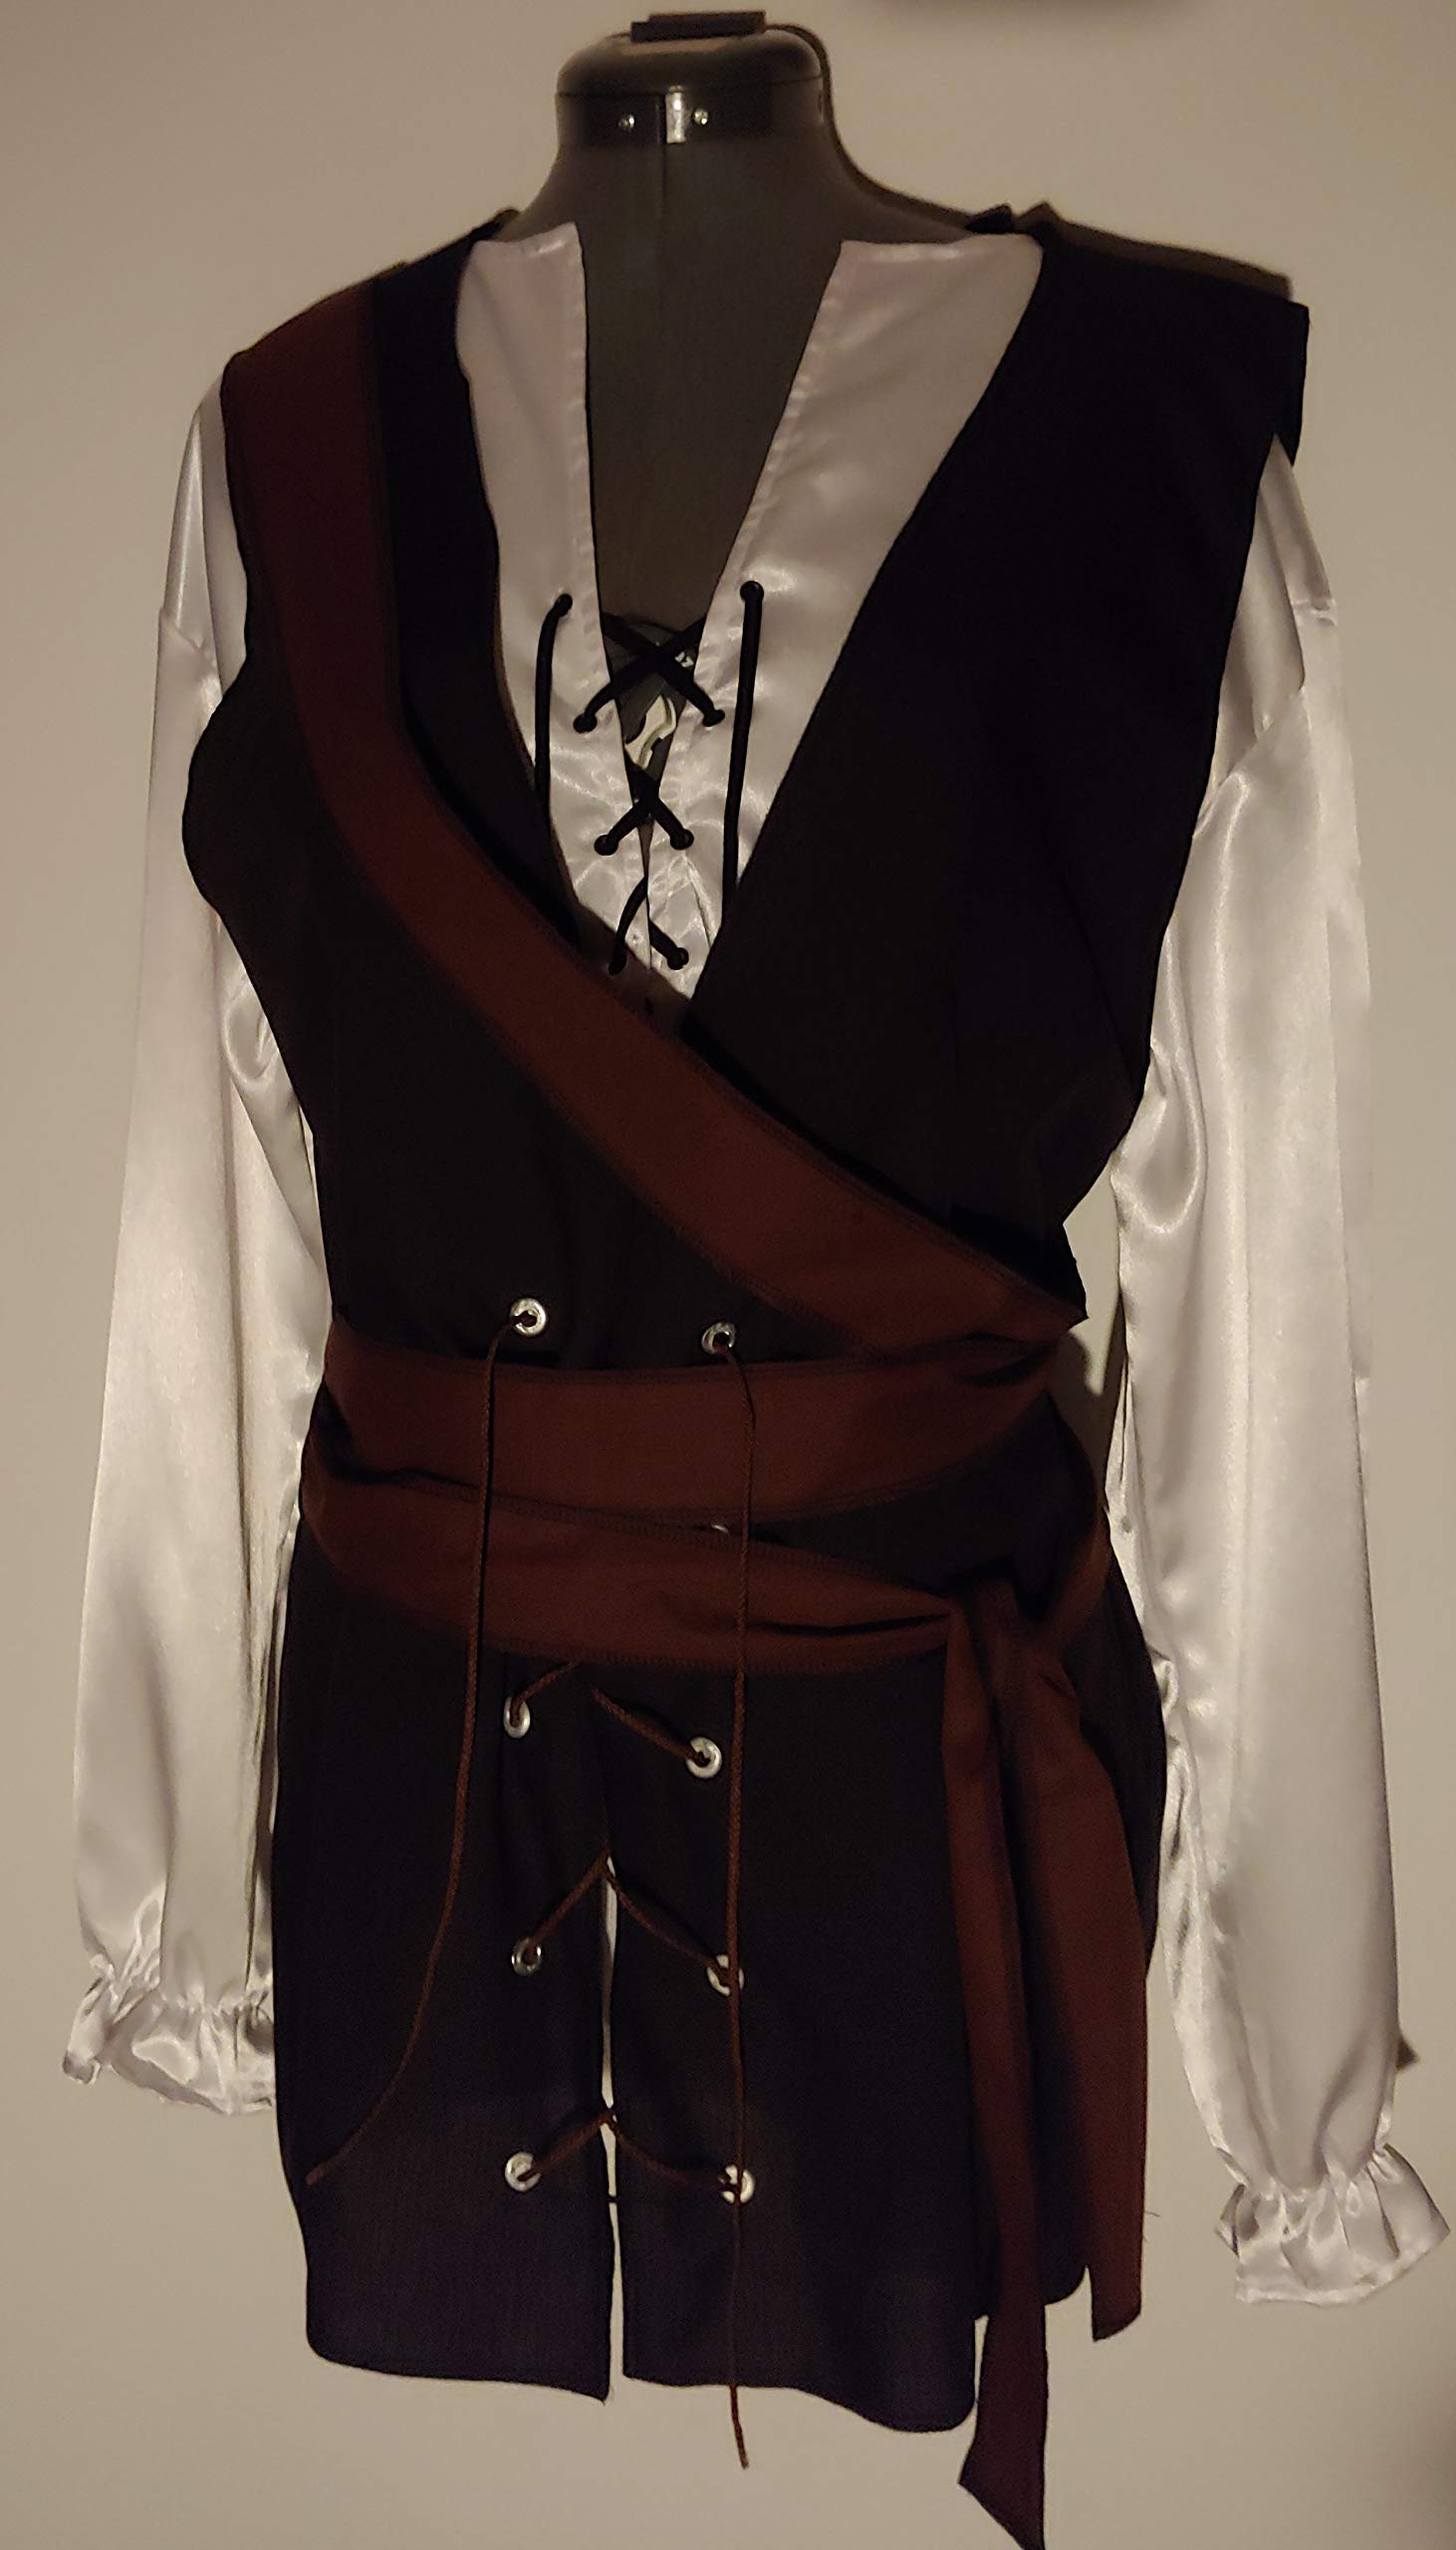 mens adult medium/large light weight black and brown cotton polyester SCA renaissance pirate vest and 138'' extra long brown wrap sash costume costumes (chest 42'')